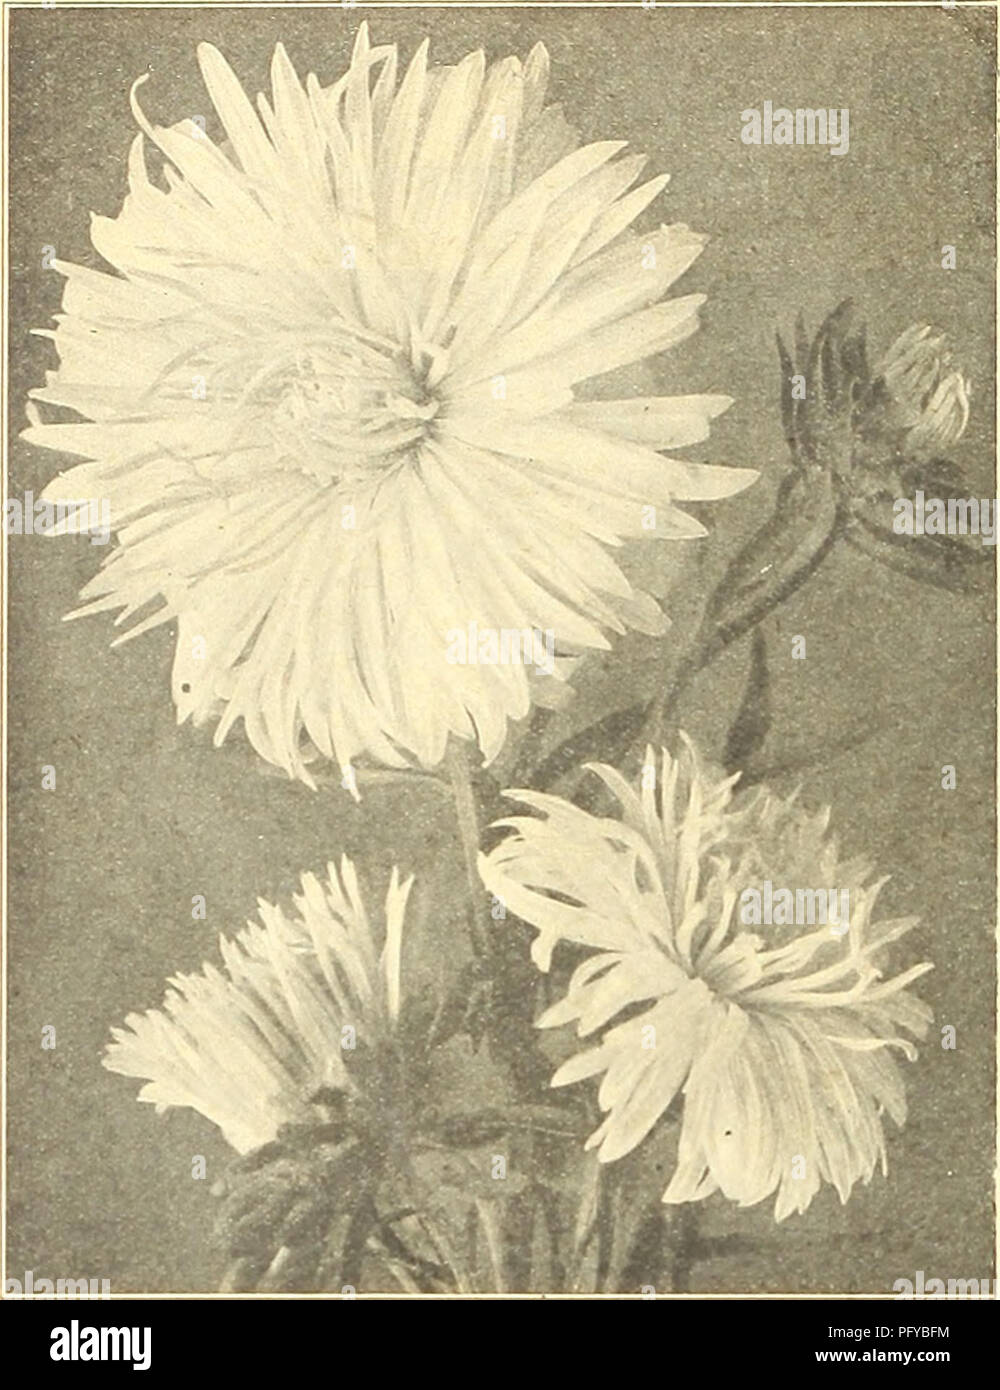 """. Currie's farm and garden annual : spring 1921 46th year. Flowers Seeds Catalogs; Bulbs (Plants) Seeds Catalogs; Vegetables Seeds Catalogs; Nurseries (Horticulture) Catalogs; Plants, Ornamental Catalogs; Gardening Equipment and supplies Catalogs. 50 CURRIE BROTHERS COMPANY, MILWAUKEE, WIS.. CURRIE'S CHOICE ASTERS ASTERMUM. Pkt. A splendid new type of the Hohenzollern Aster, of im- mense size, with very full center. The plant reaches a height of from IS to 24 inches, growing- very straight, with strong, sturdy stems, starting near the base. """"We offer it in three colors, White, Pink, Laven - Stock Image"""